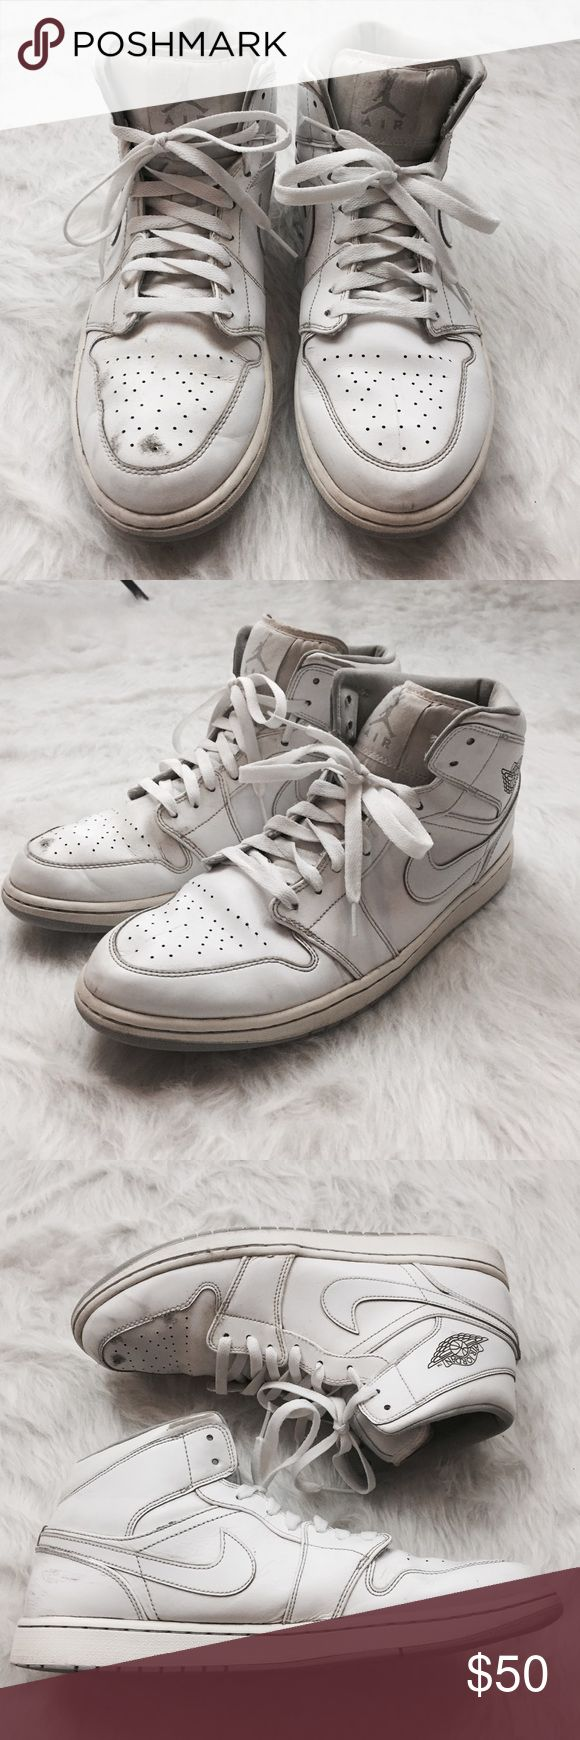 Jordan 1's All White Jordan One men's size 13. See photos for details Nike Shoes Sneakers